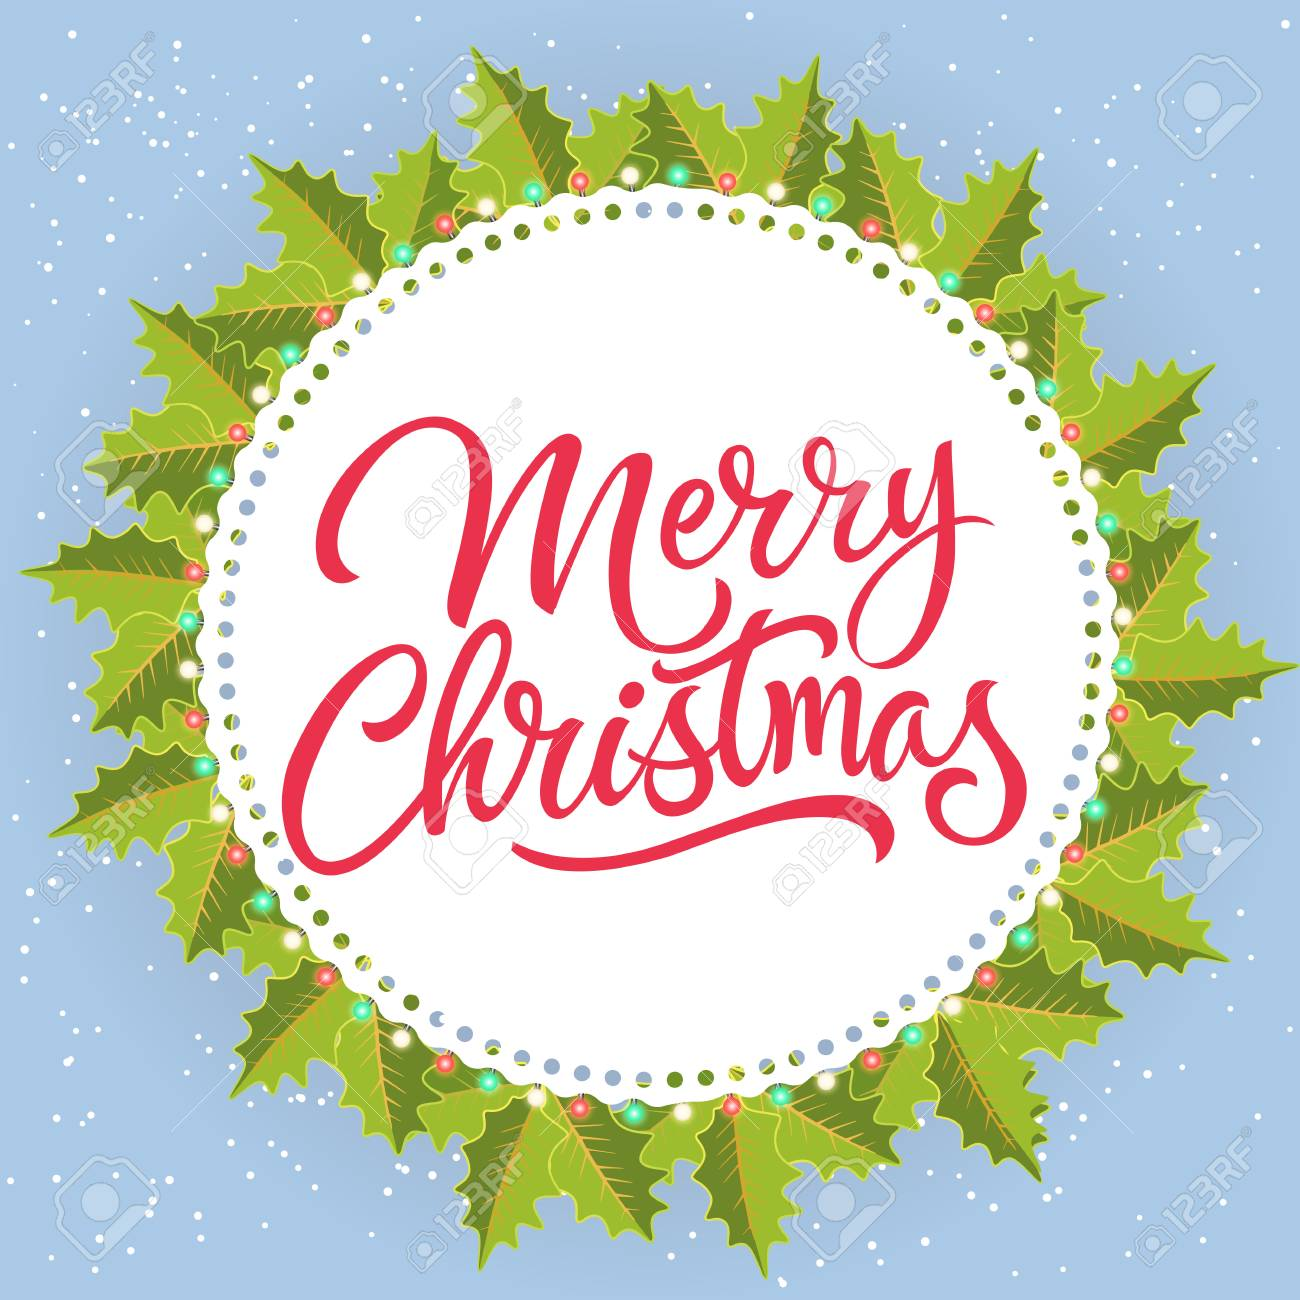 Merry Christmas Lettering In Circle. Christmas Greeting Card ...